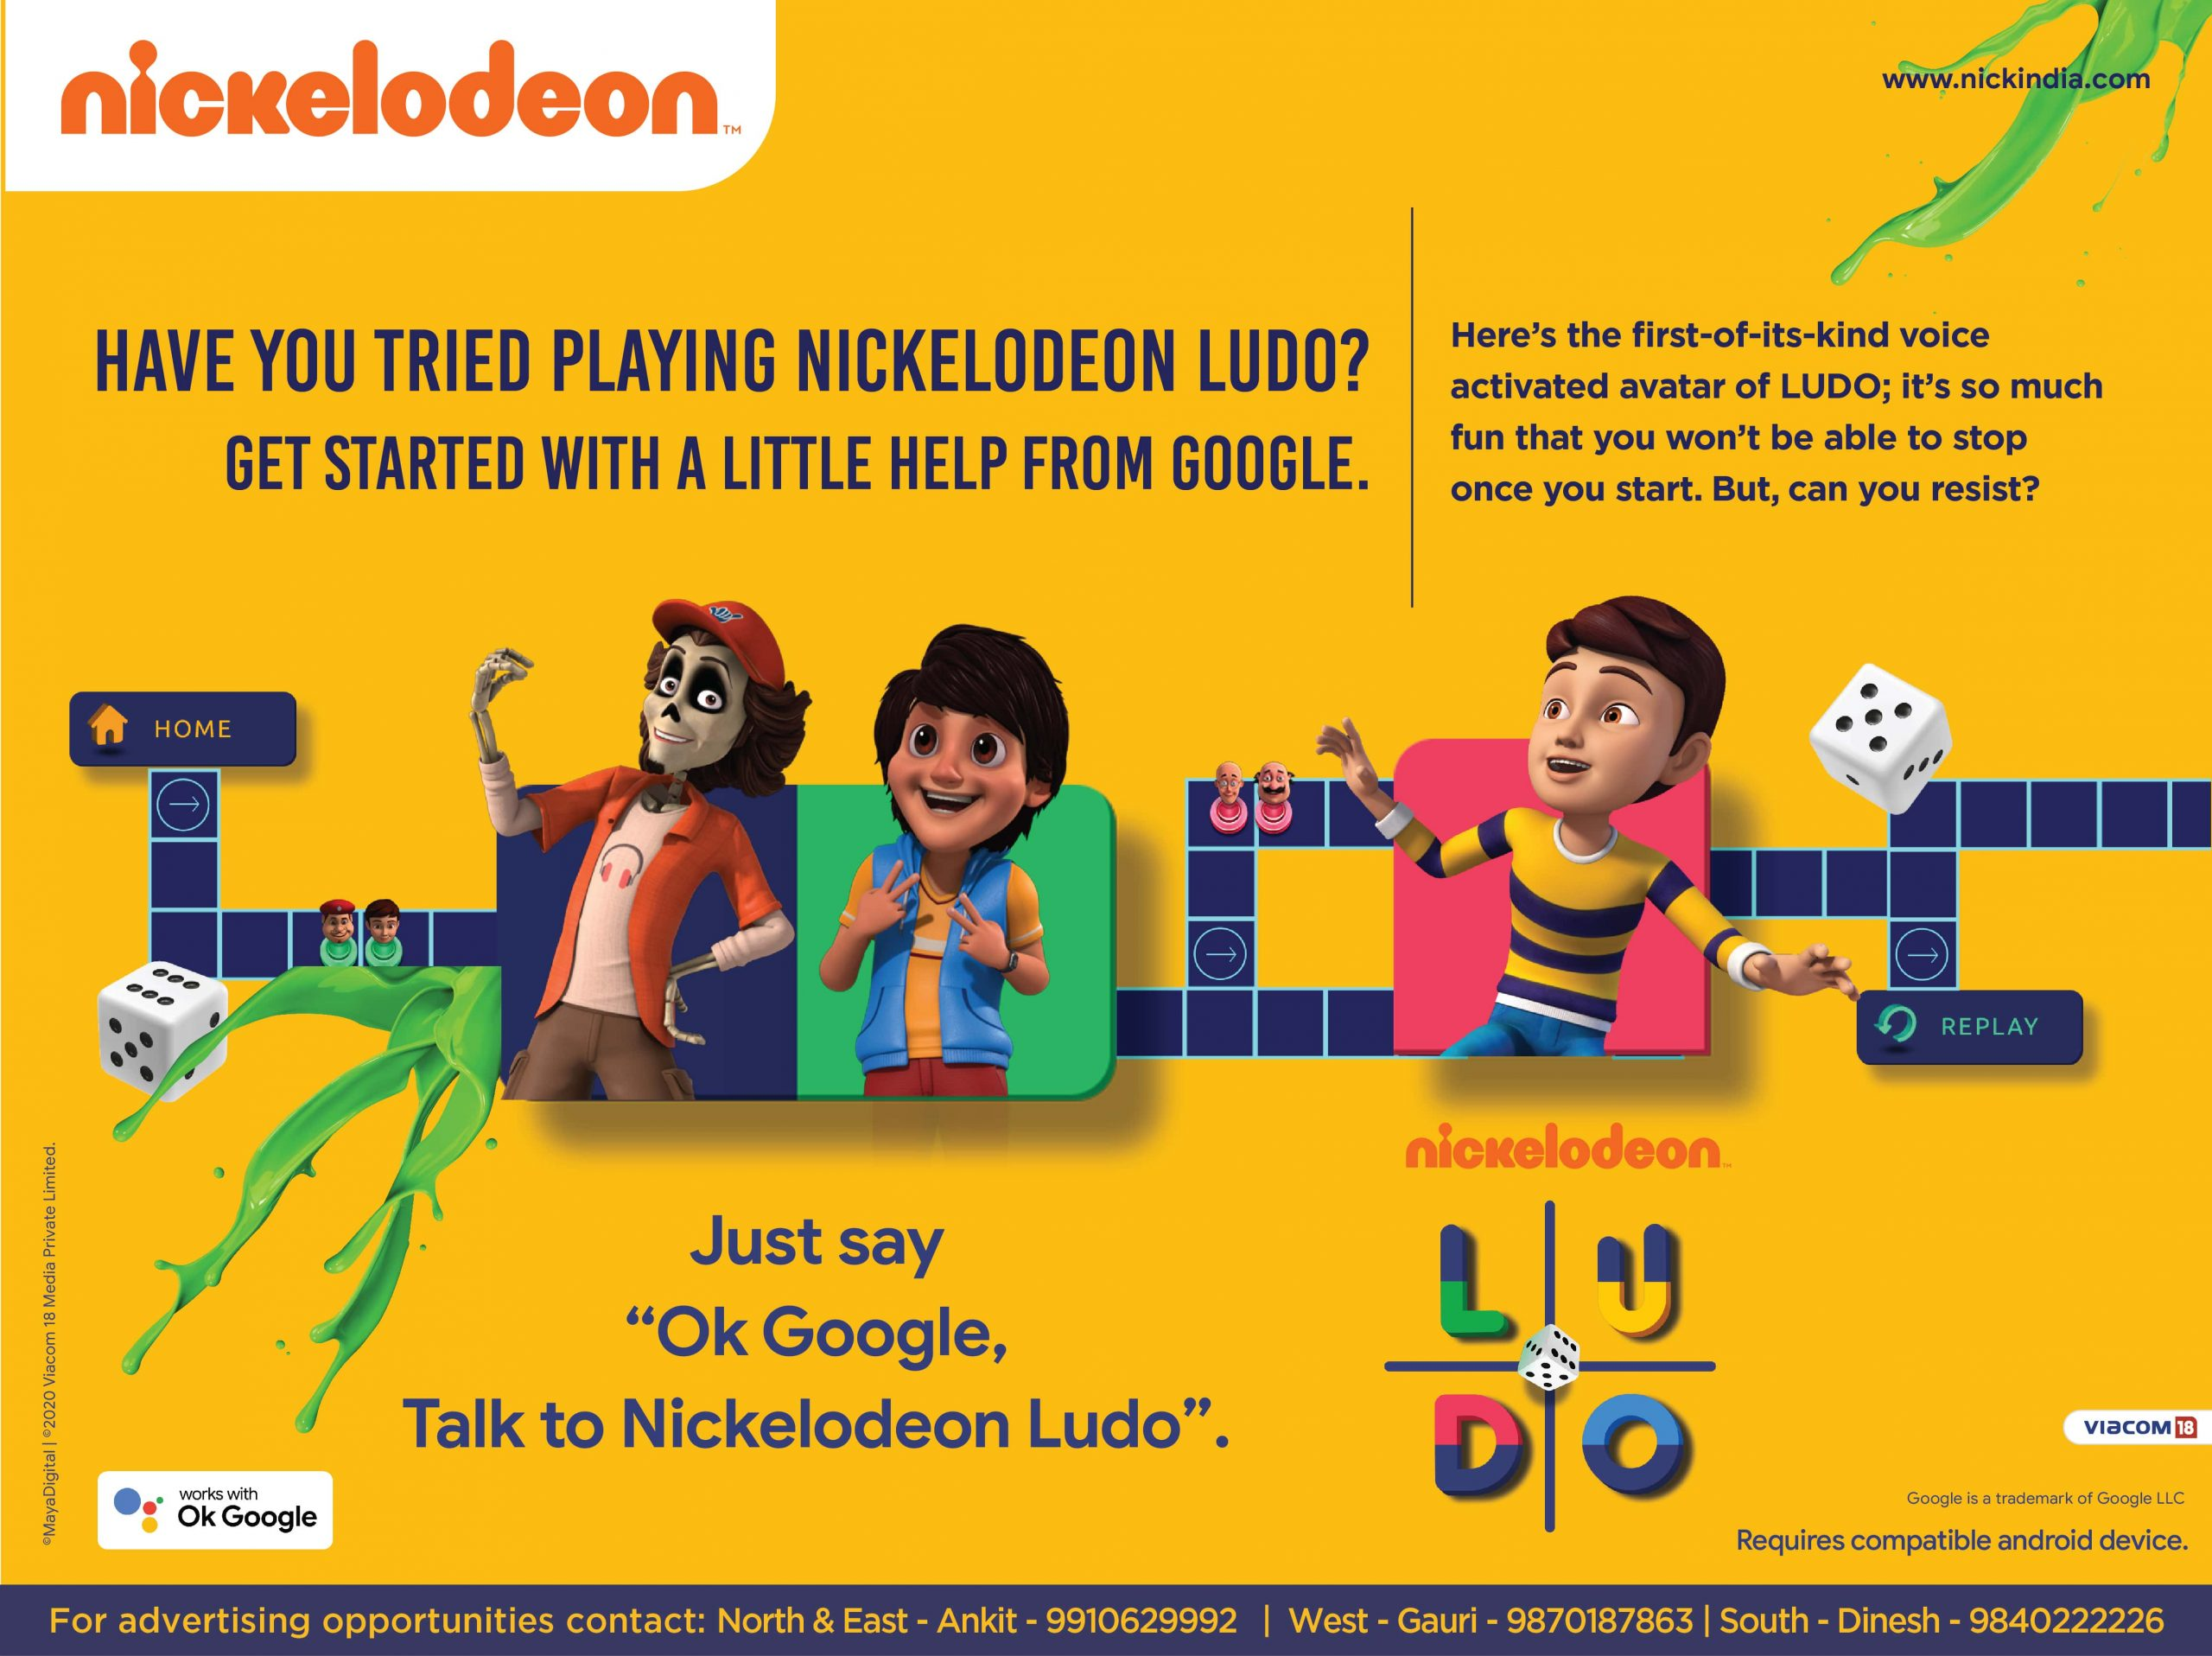 Nickelodeon reimagines the epic game of Ludo with a little help from Google